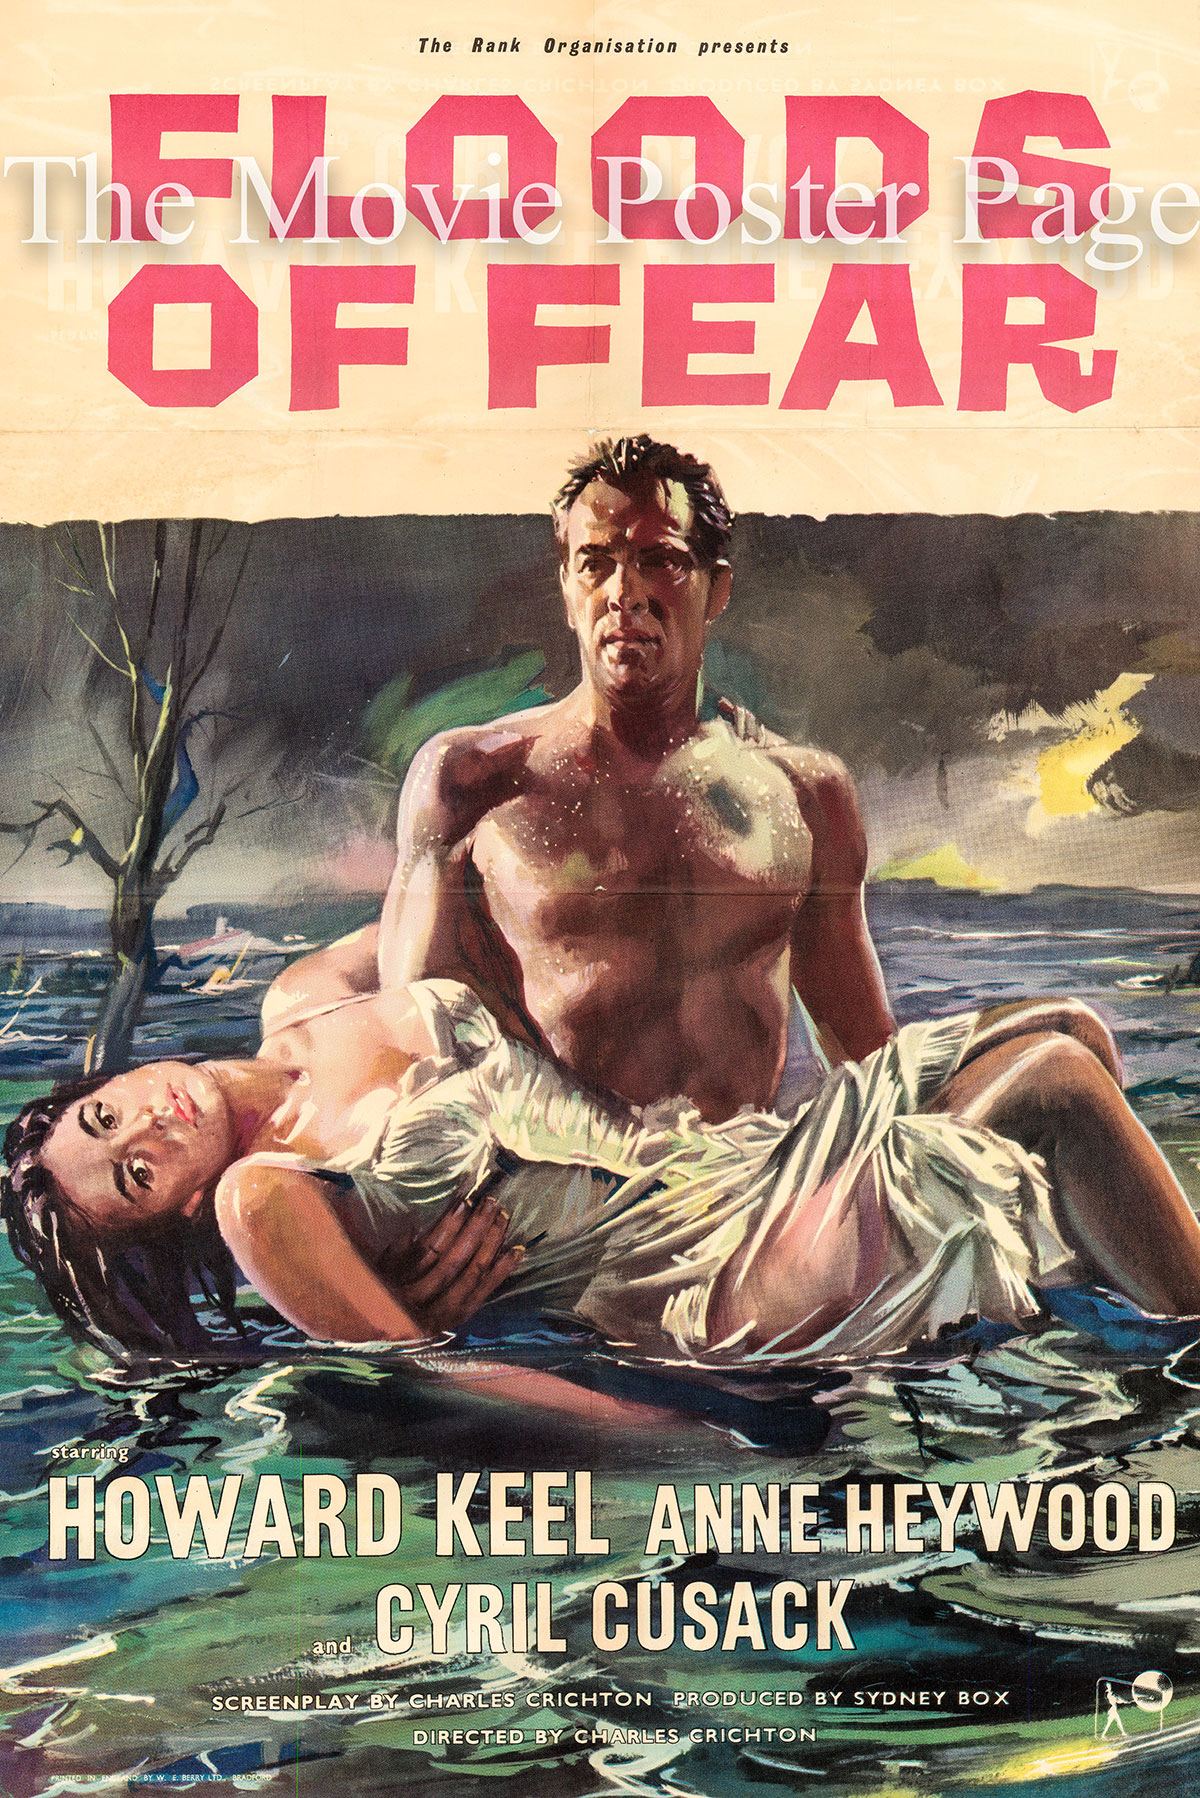 Pictured is a UK one-sheet promotional poster for the 1959 Charles Crichton film Floods of Fear starring Howard Keel.